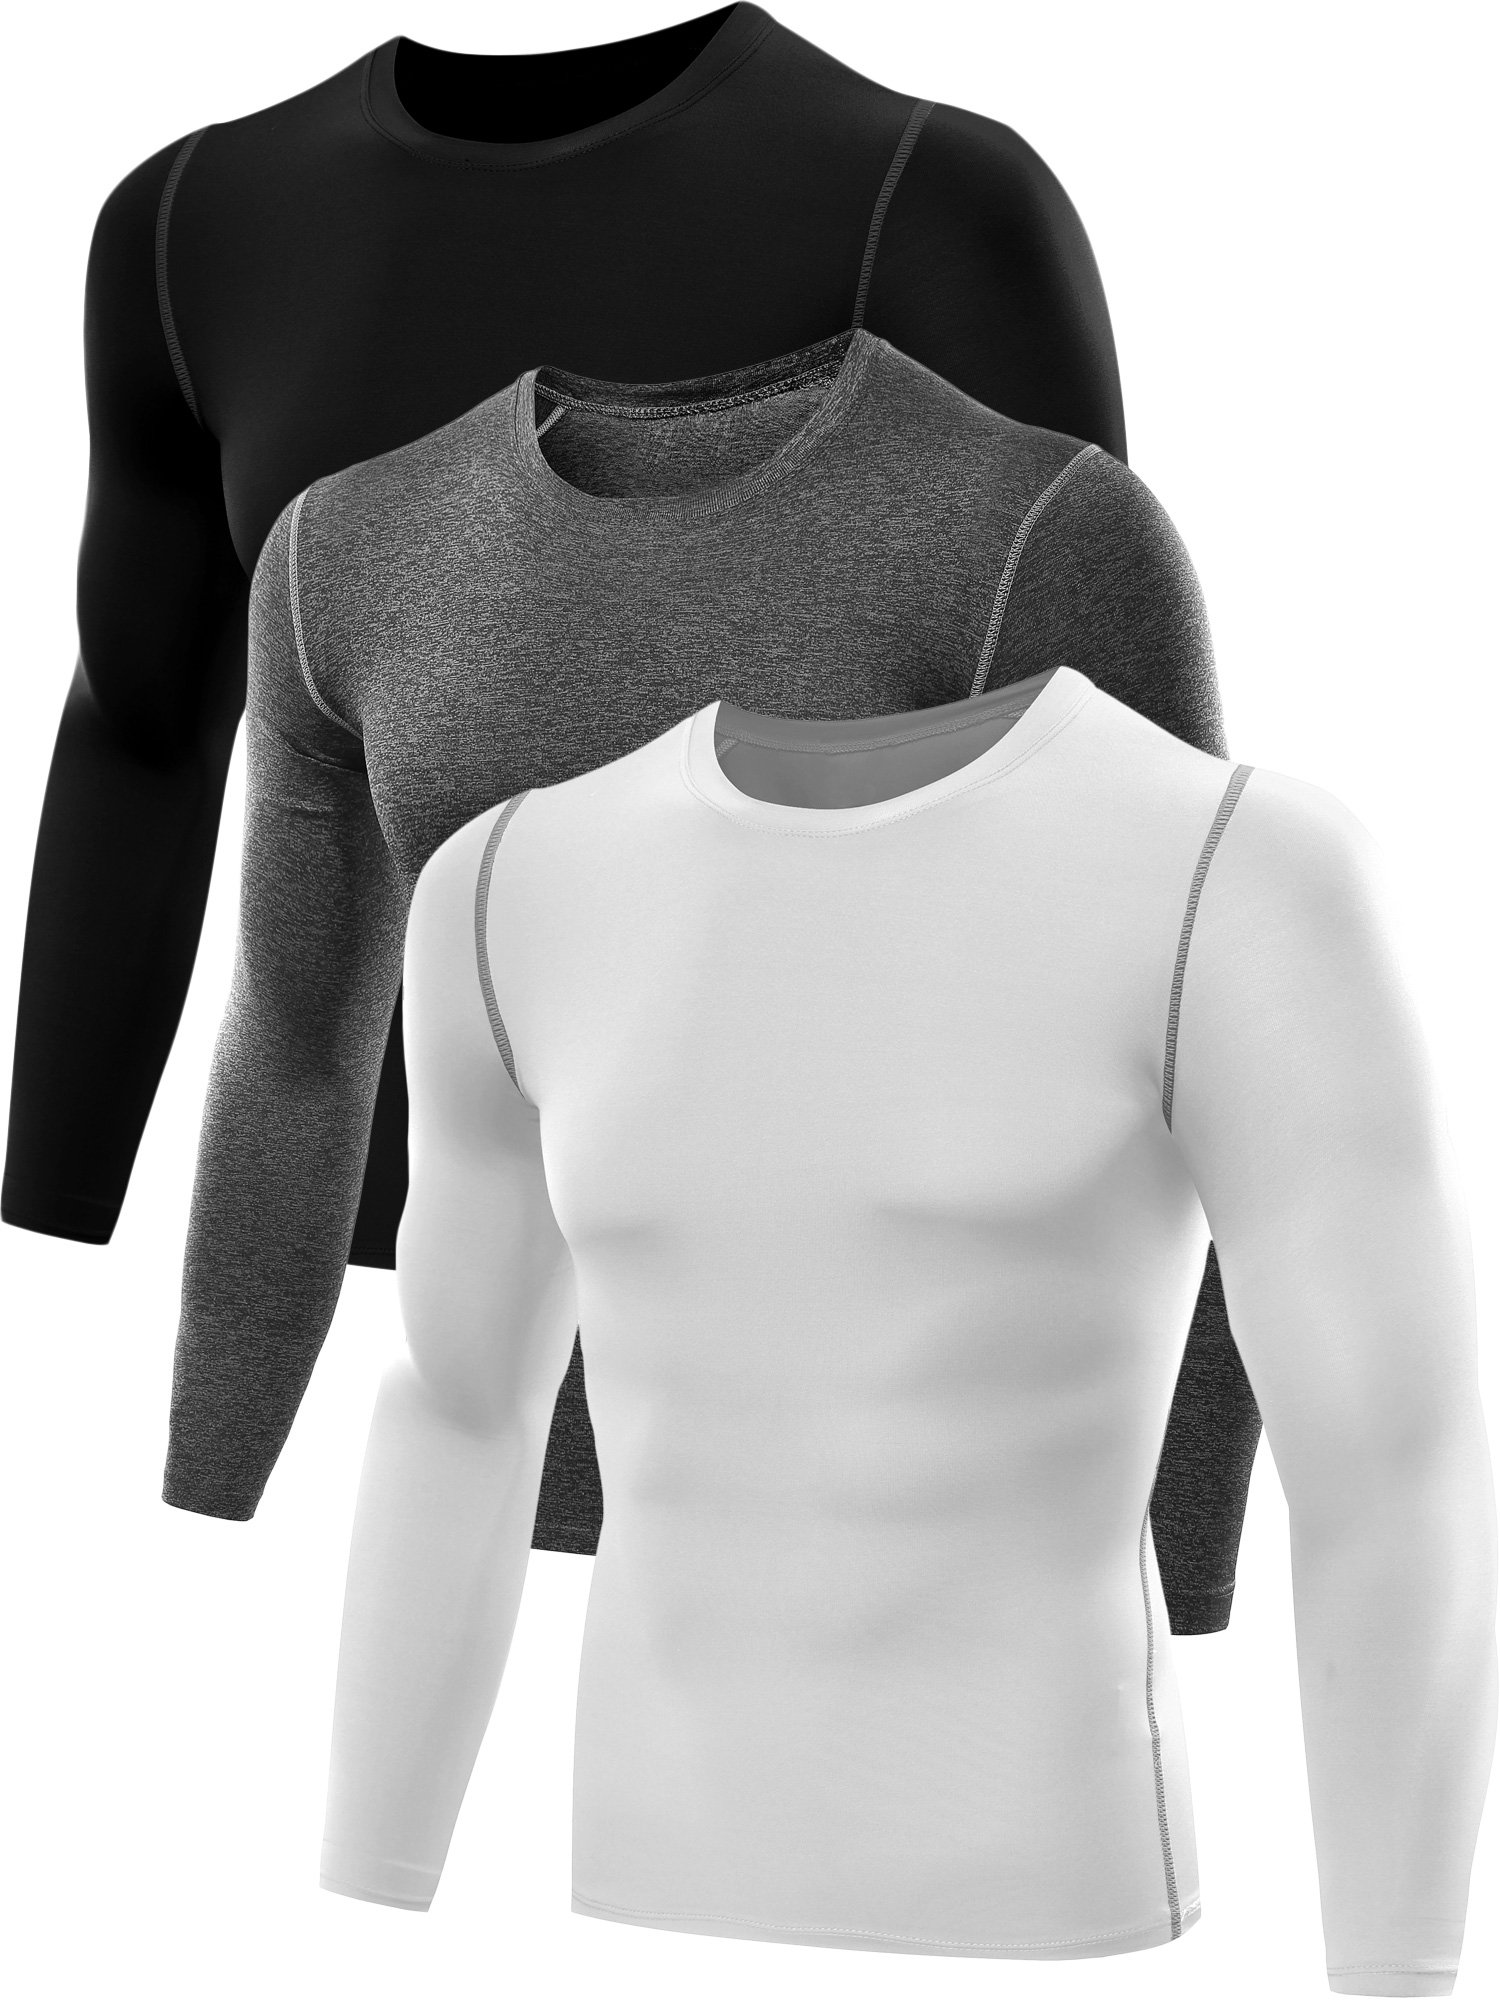 Neleus Men's 3 Pack Athletic Compression Sport Running T Shirt Long Sleeve Base Layer,Black,Grey,Whie,Medium